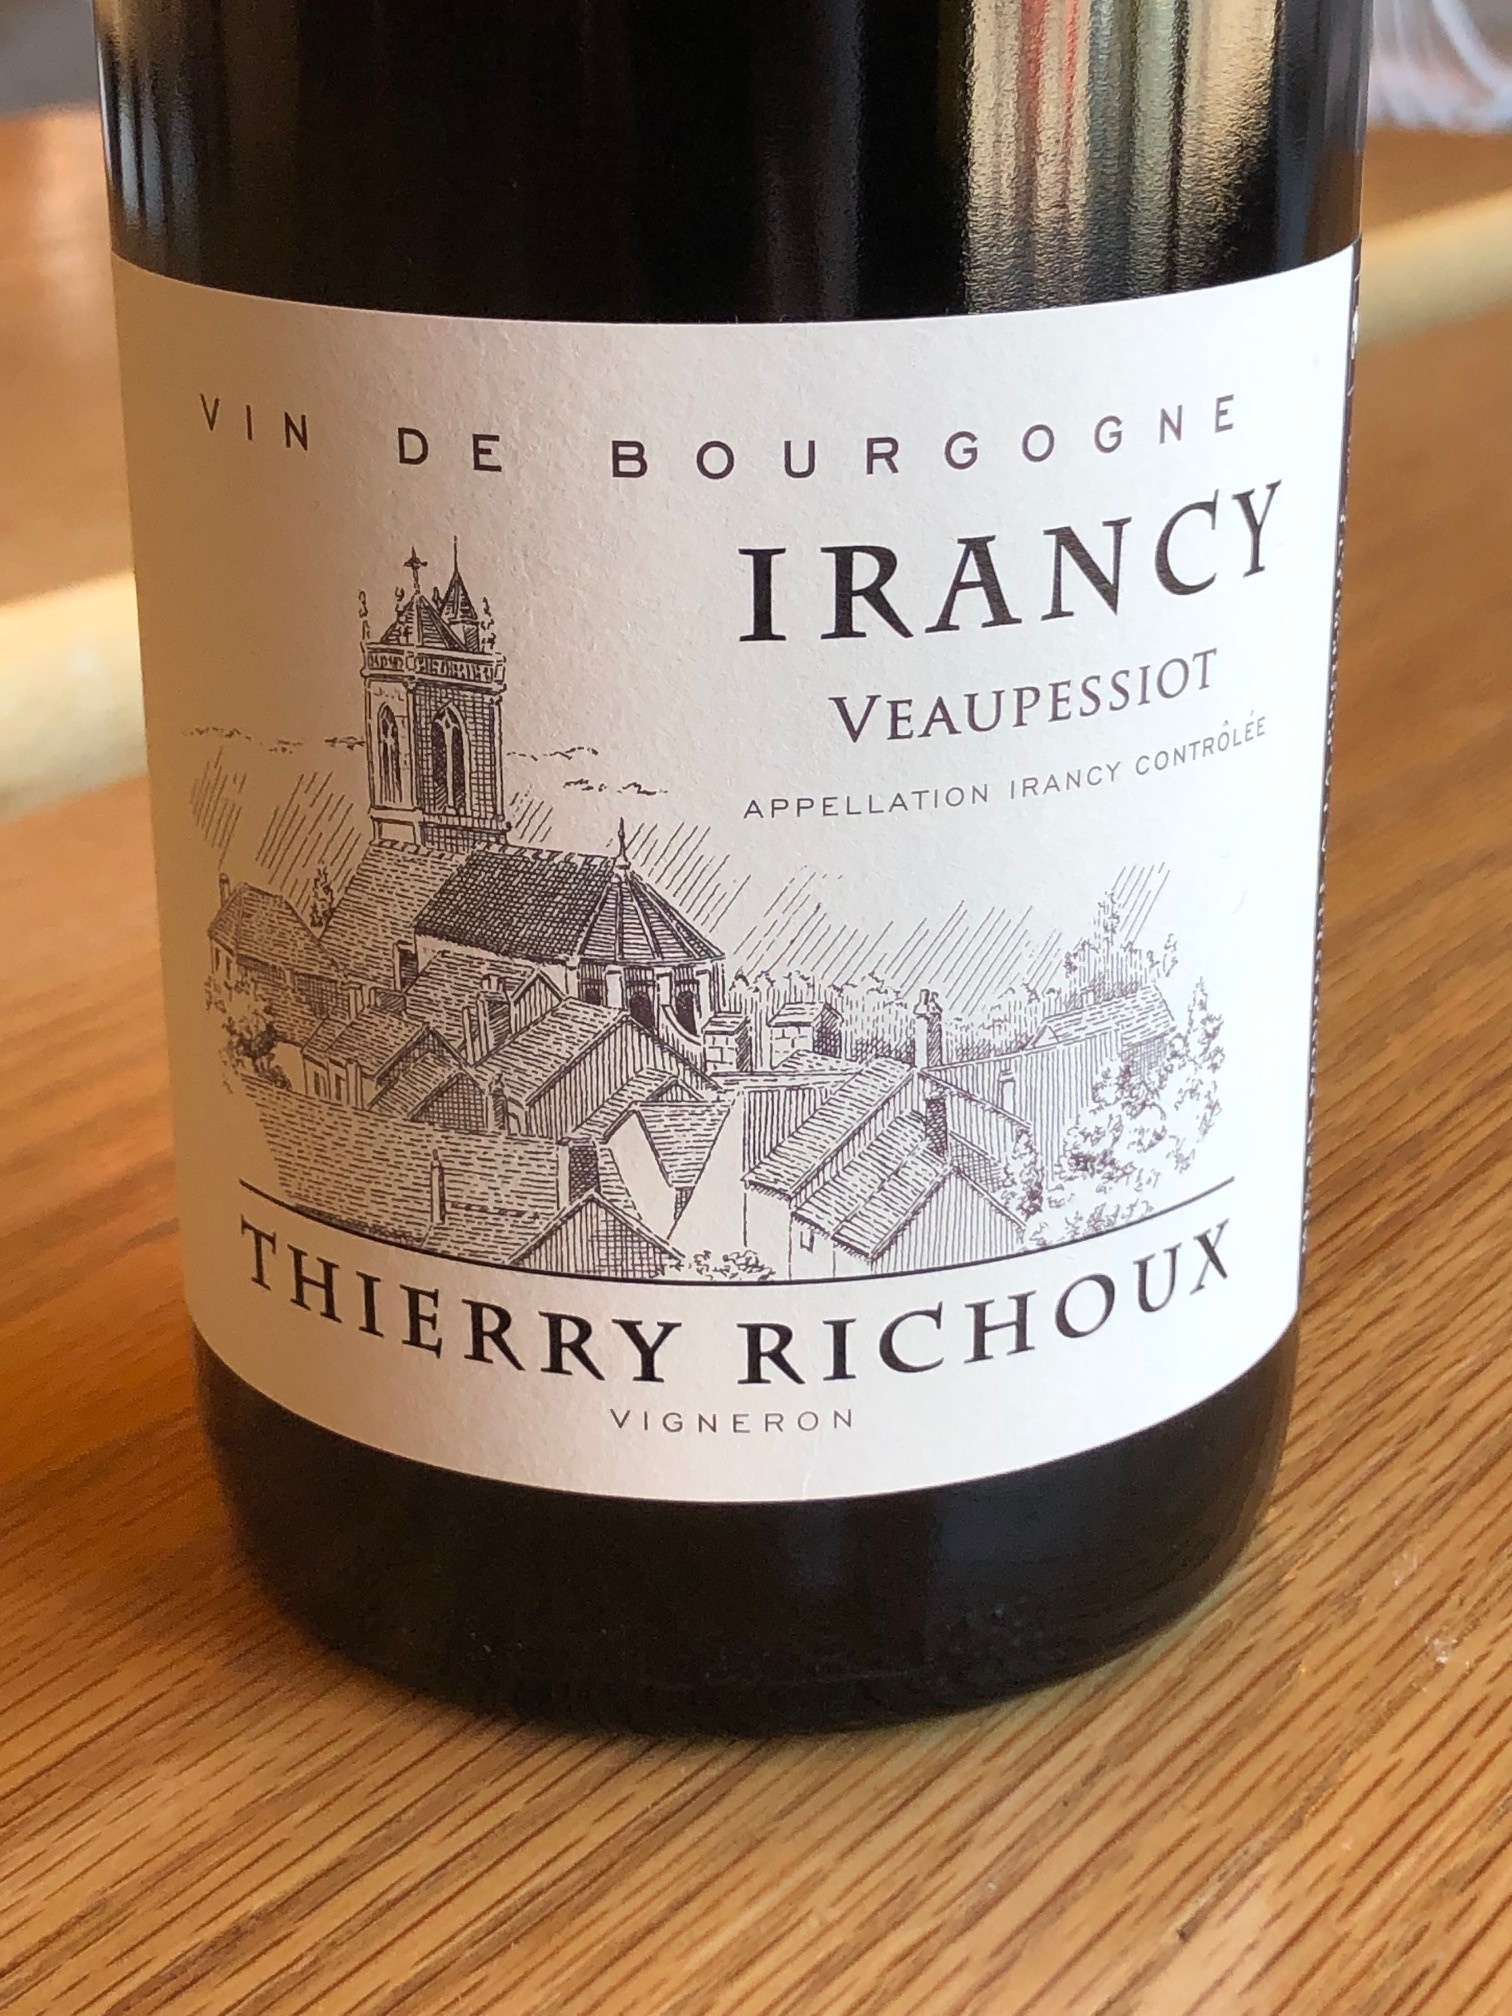 Thierry Richoux 2013 Thierry Richoux Irancy 'Veaupessiot' 750ml